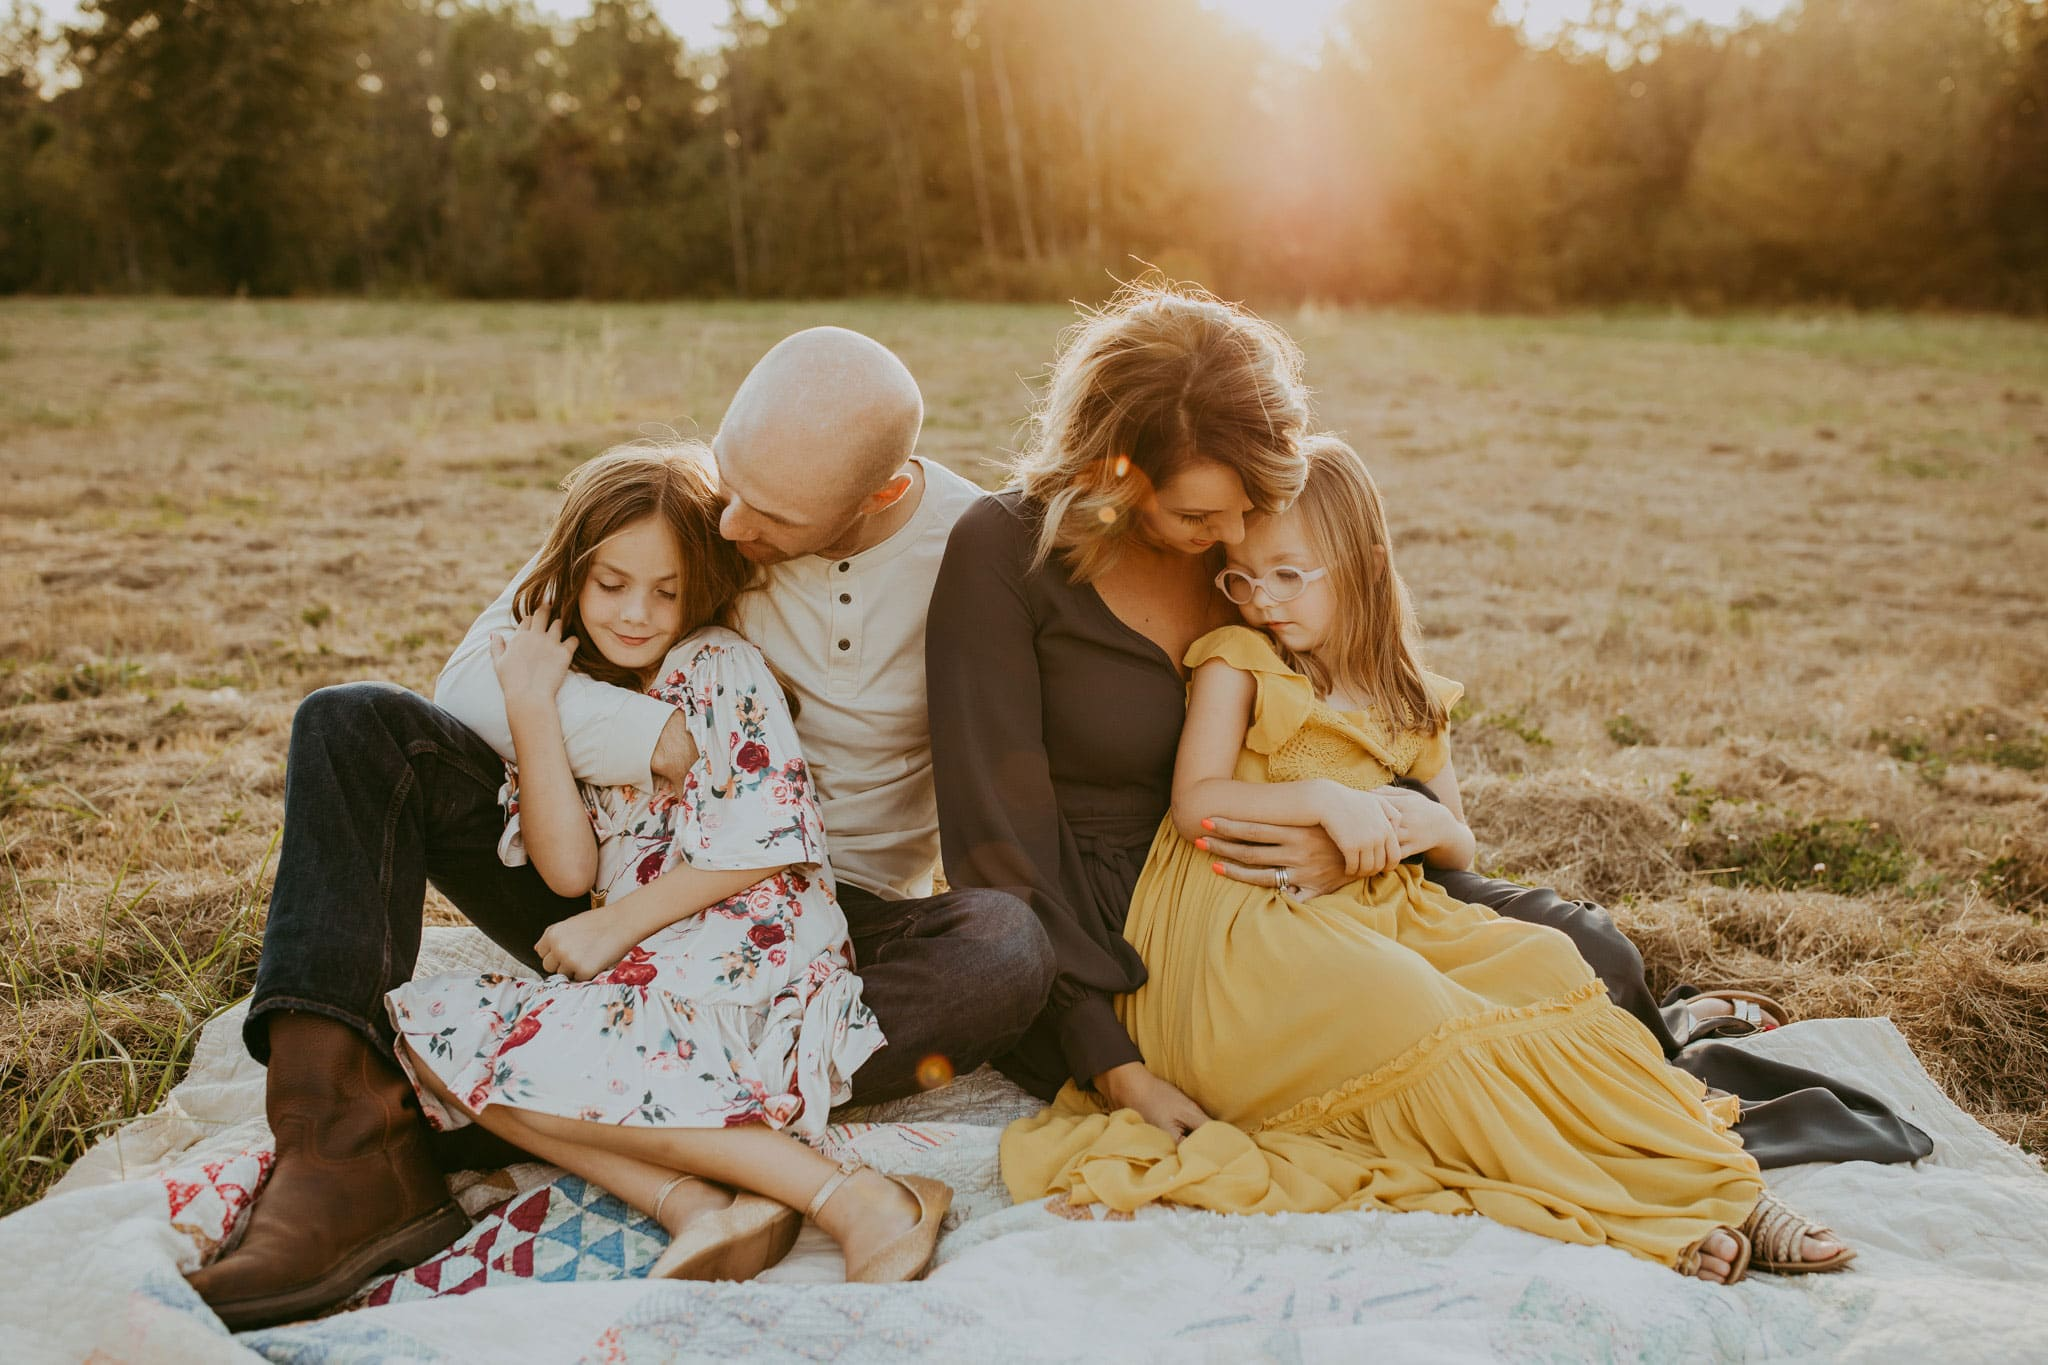 Sweet family cuddling on blanket - pdx lifestyle photography